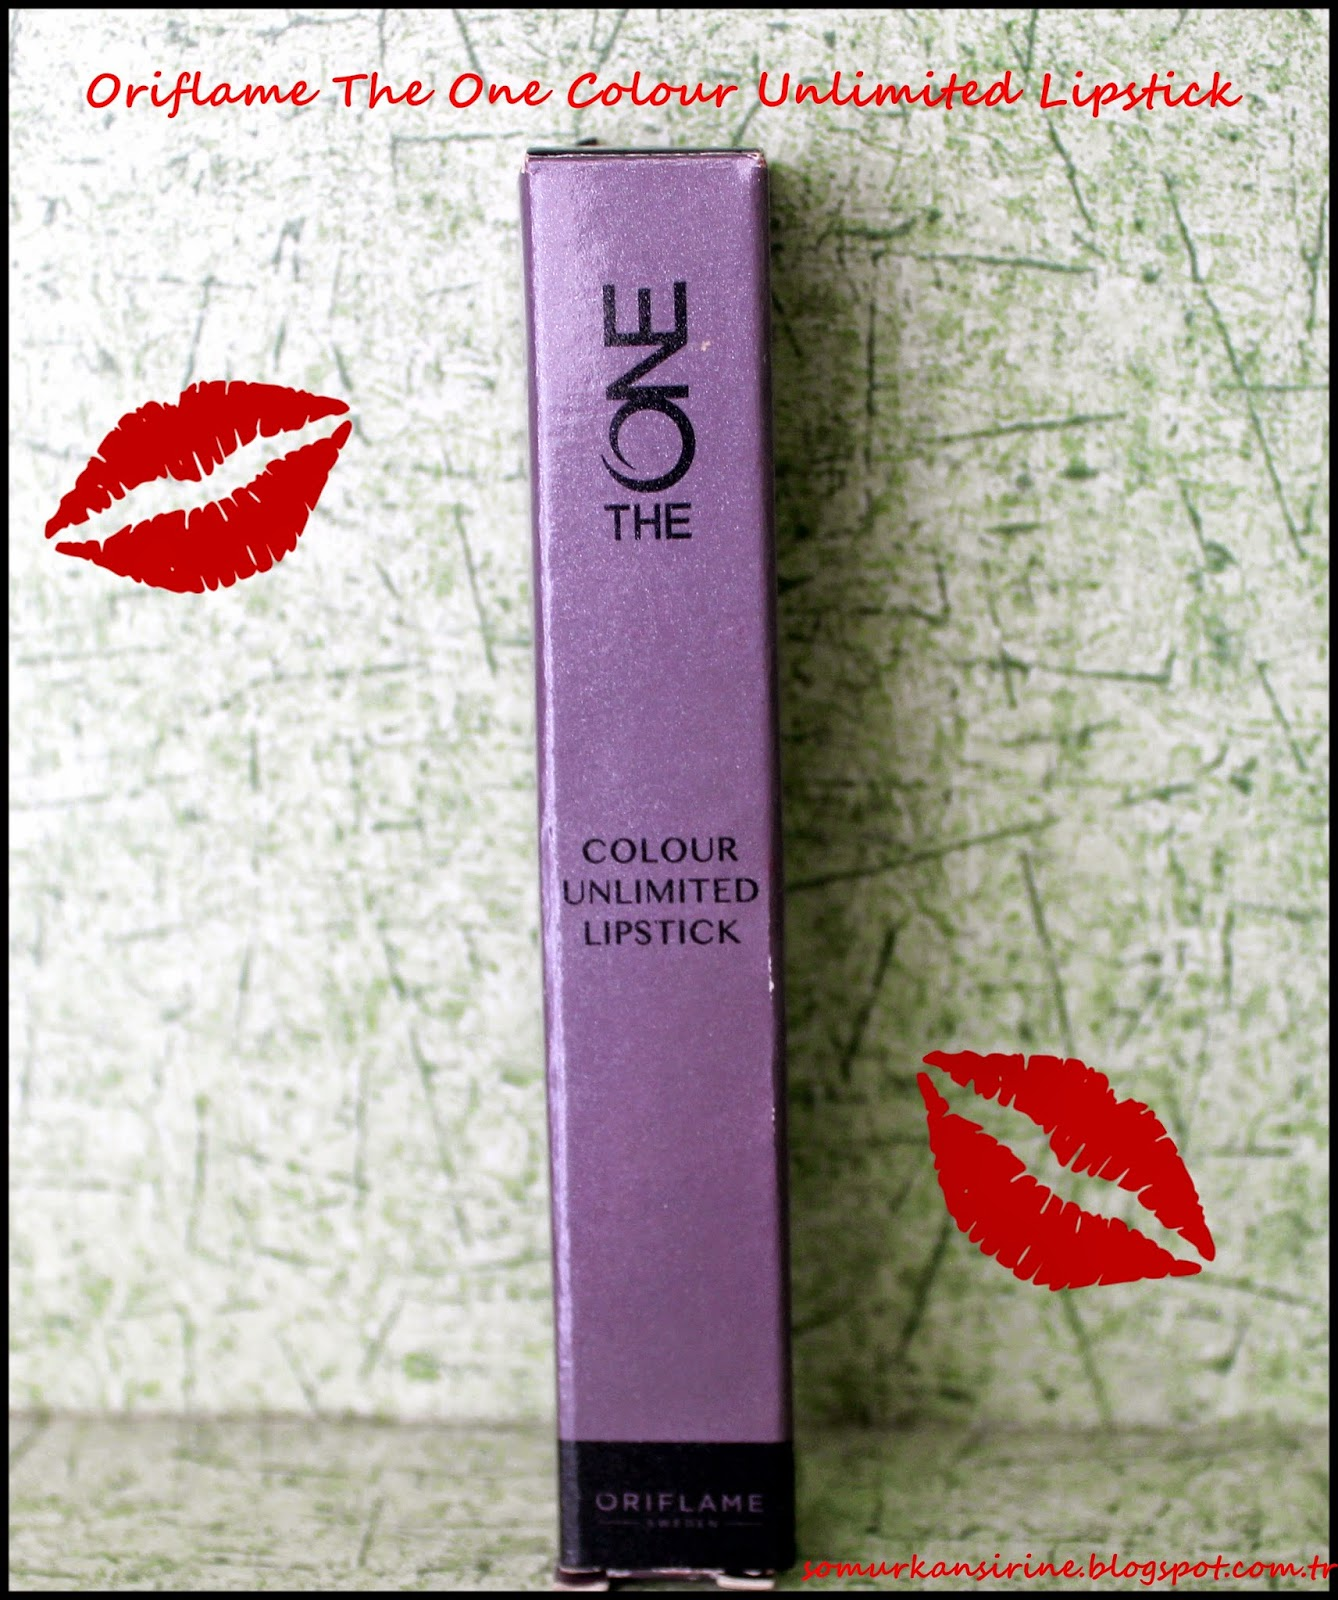 Oriflame The One Colour Unlimited Lipstick